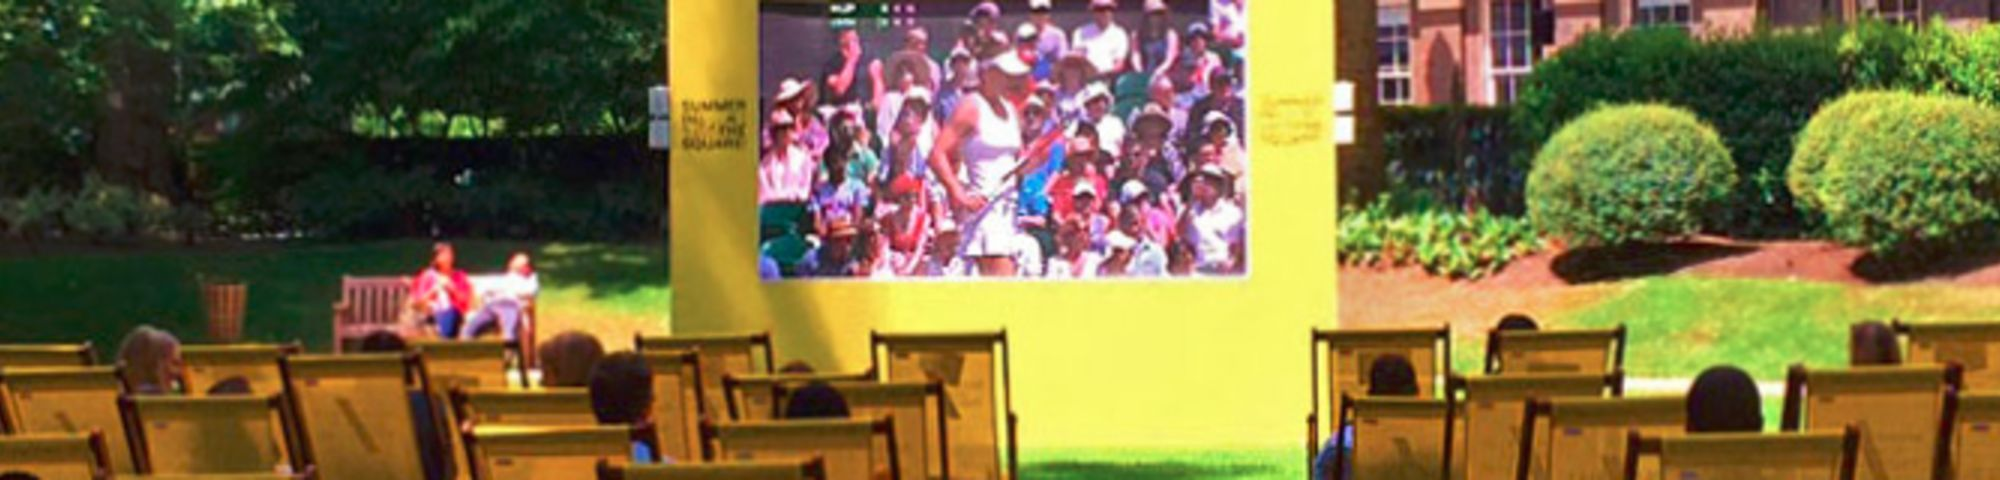 WImbledon-Big-Screen-1200×800